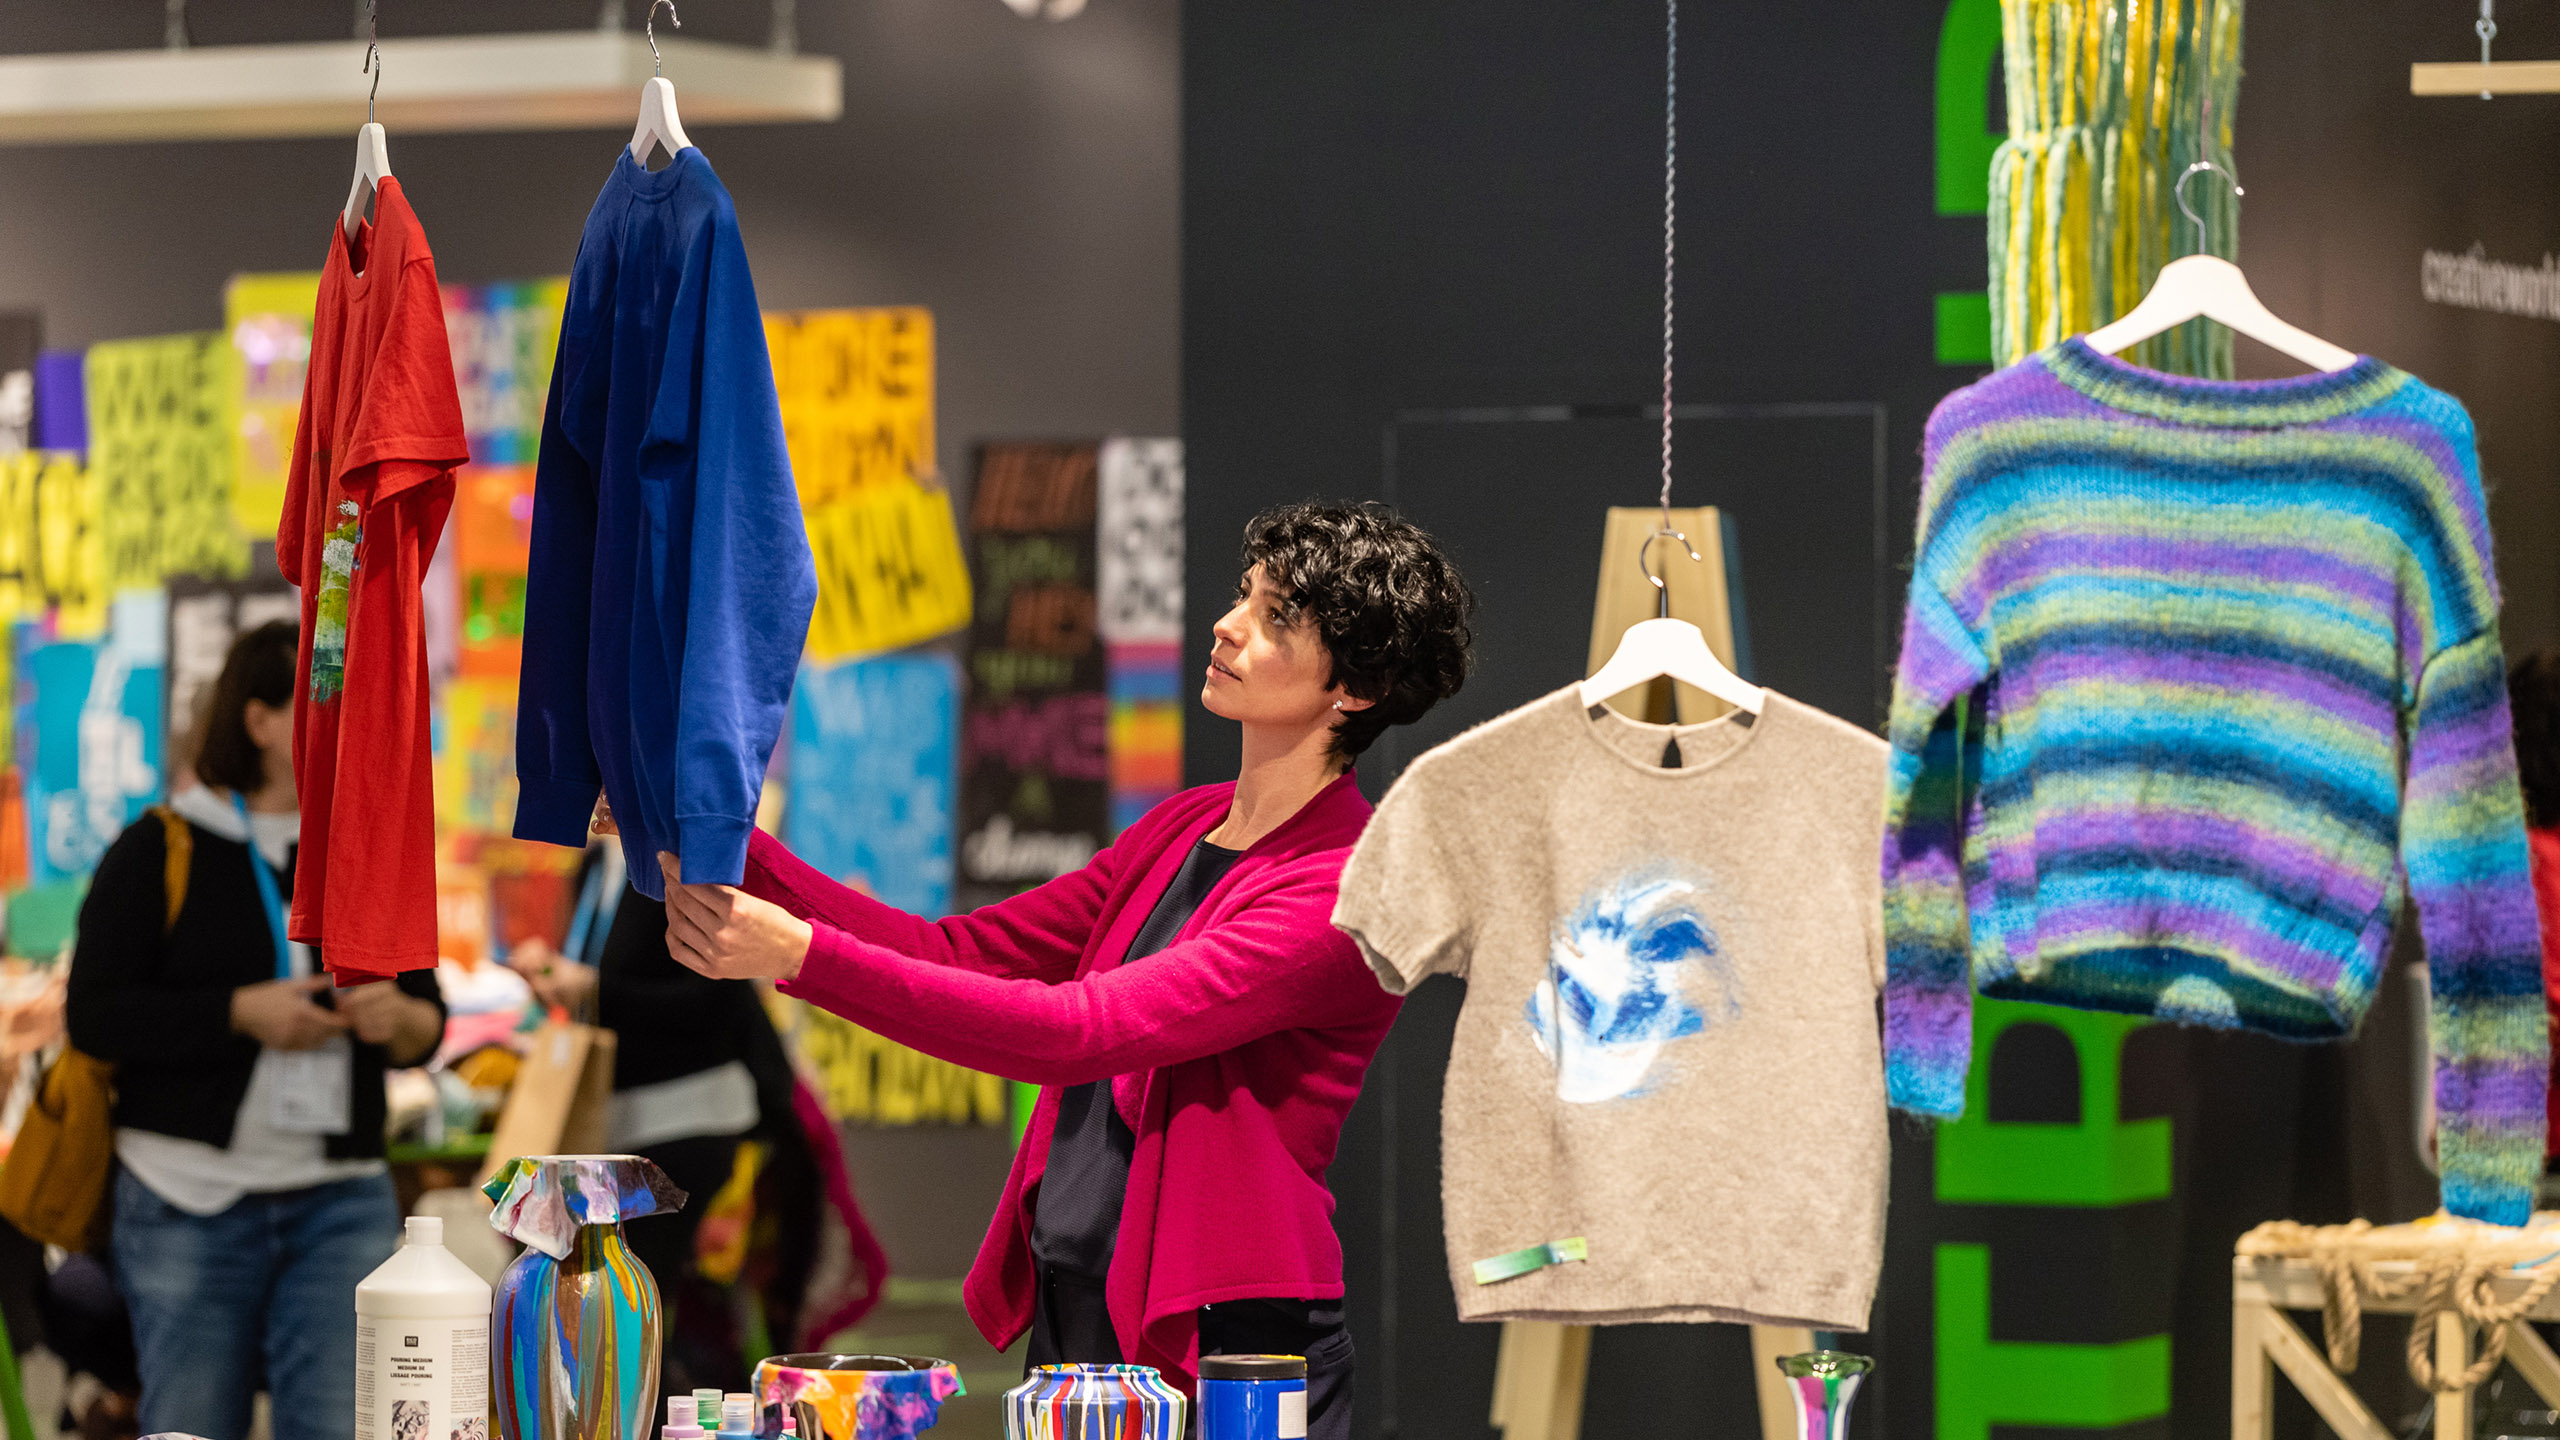 Visitor discovers the DIY trends at Creativeworld